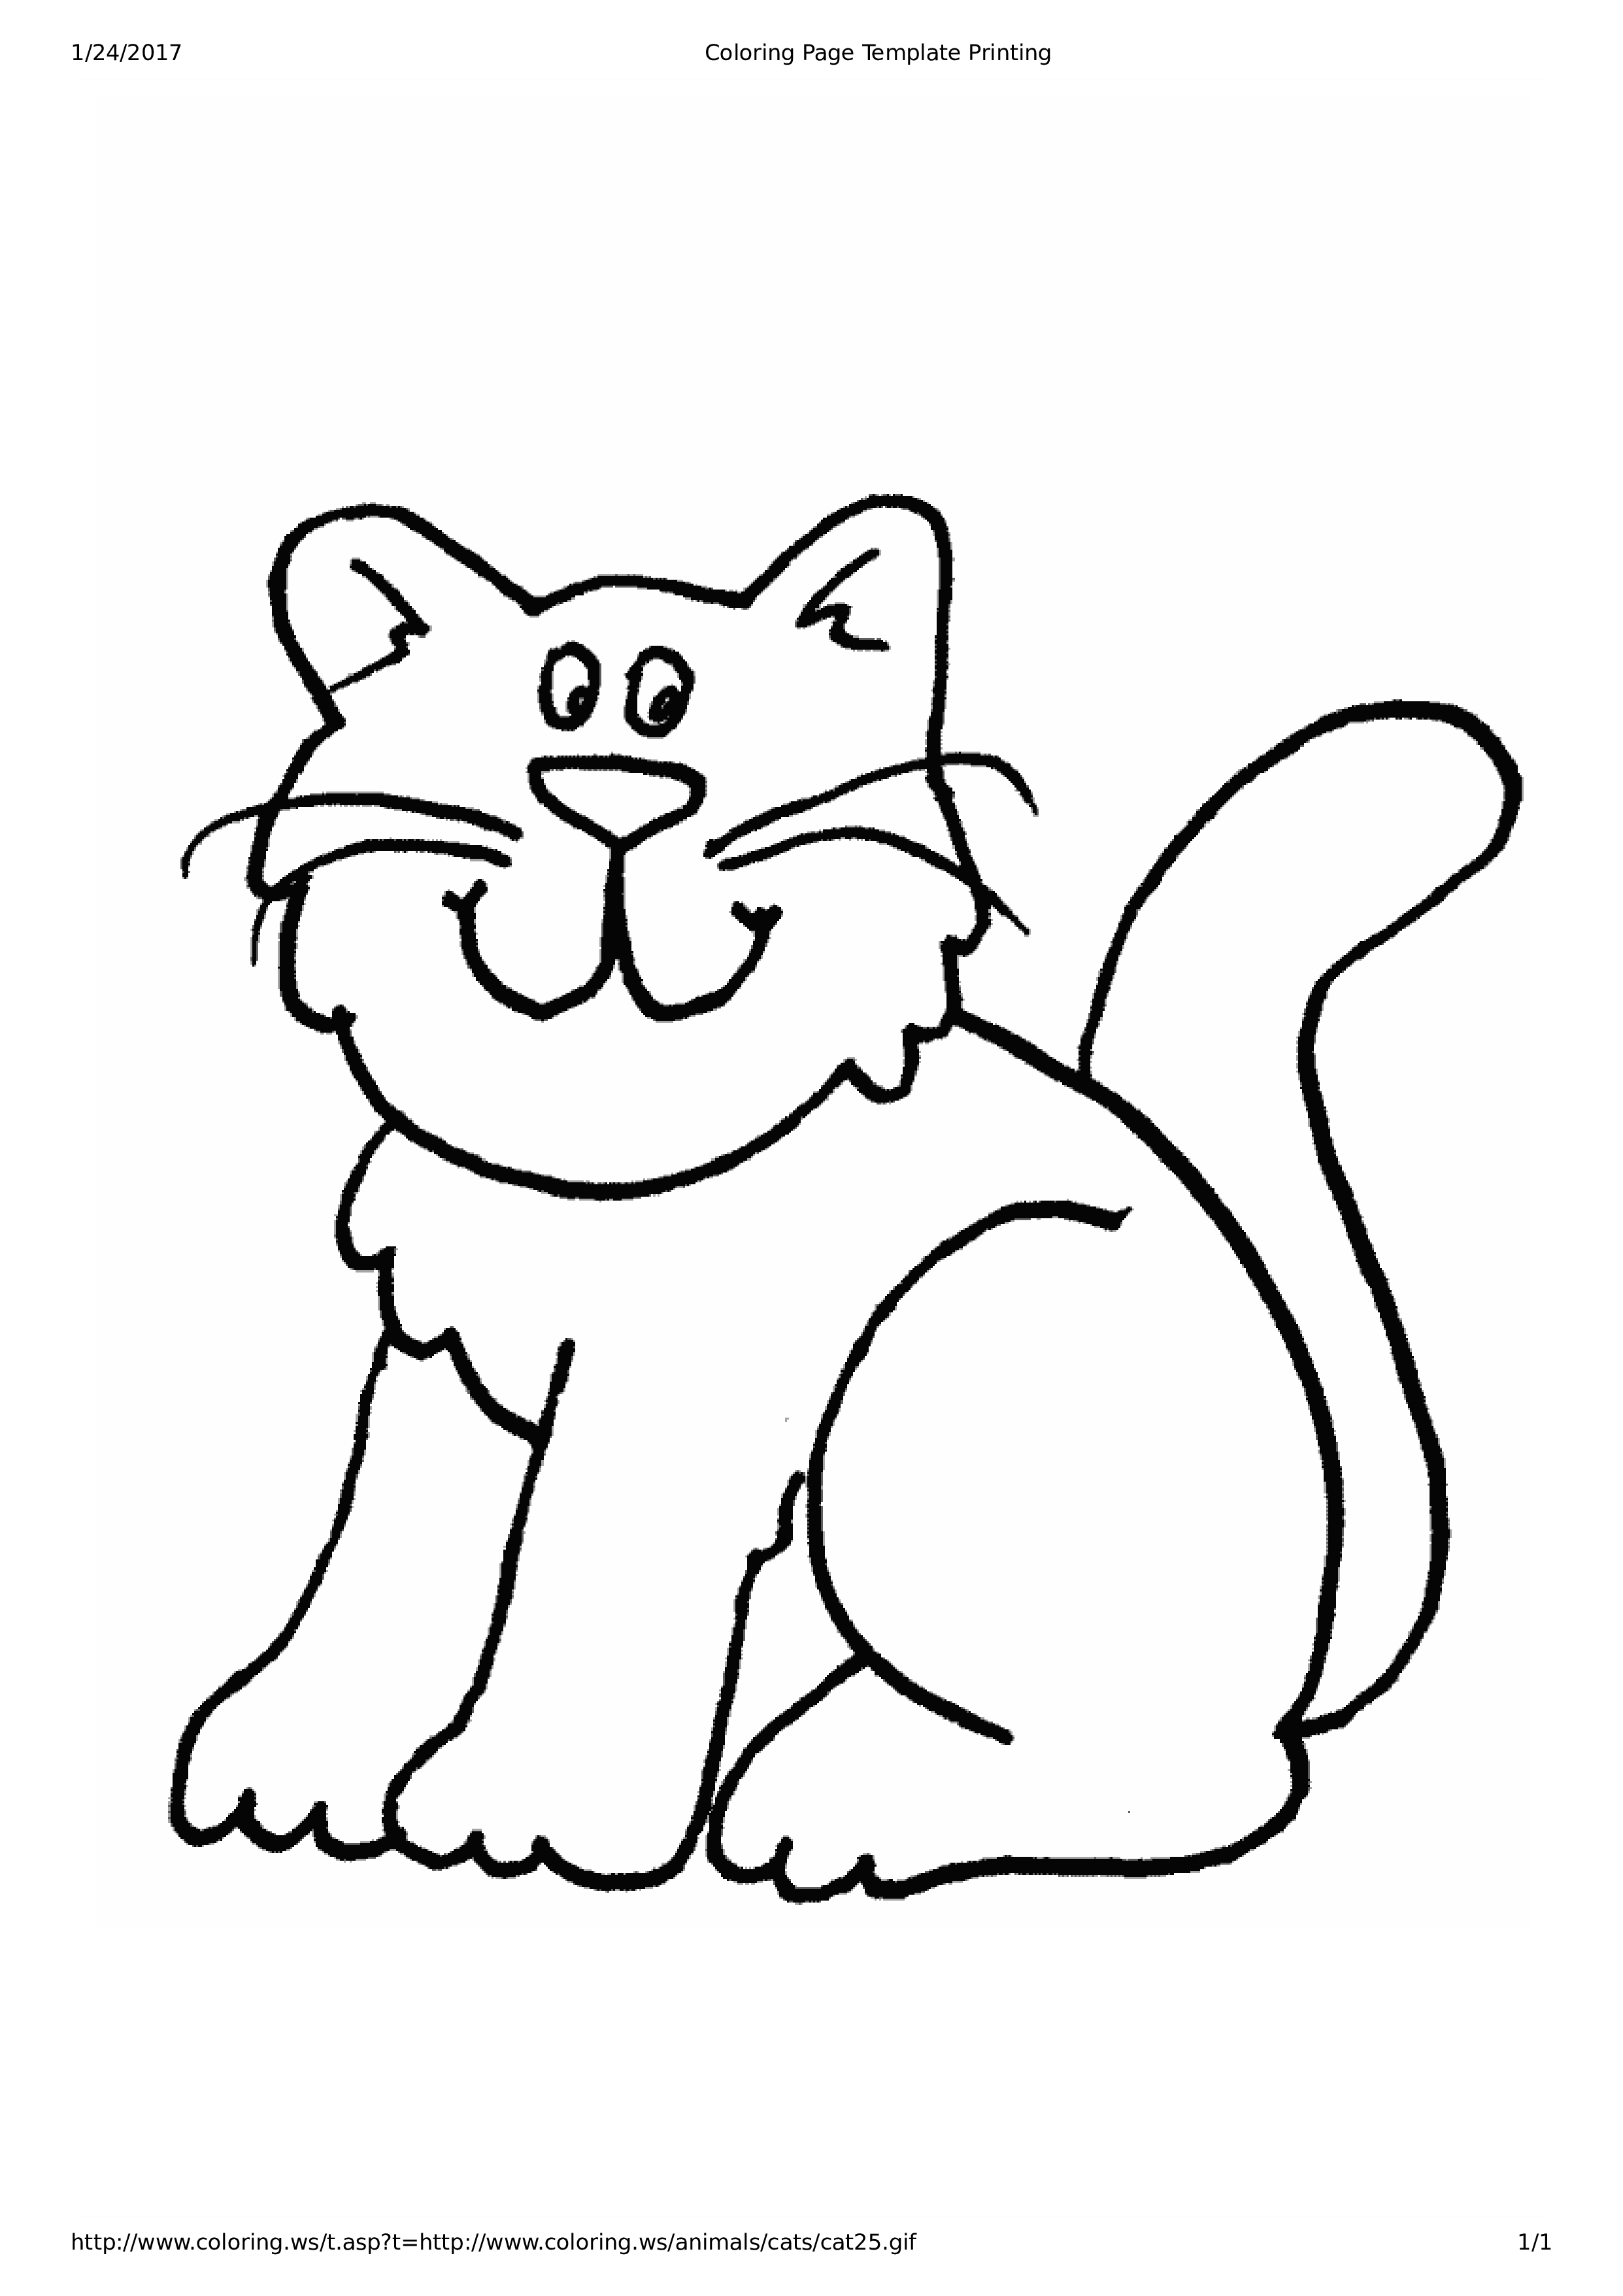 Cat Coloring Page For Kid's main image